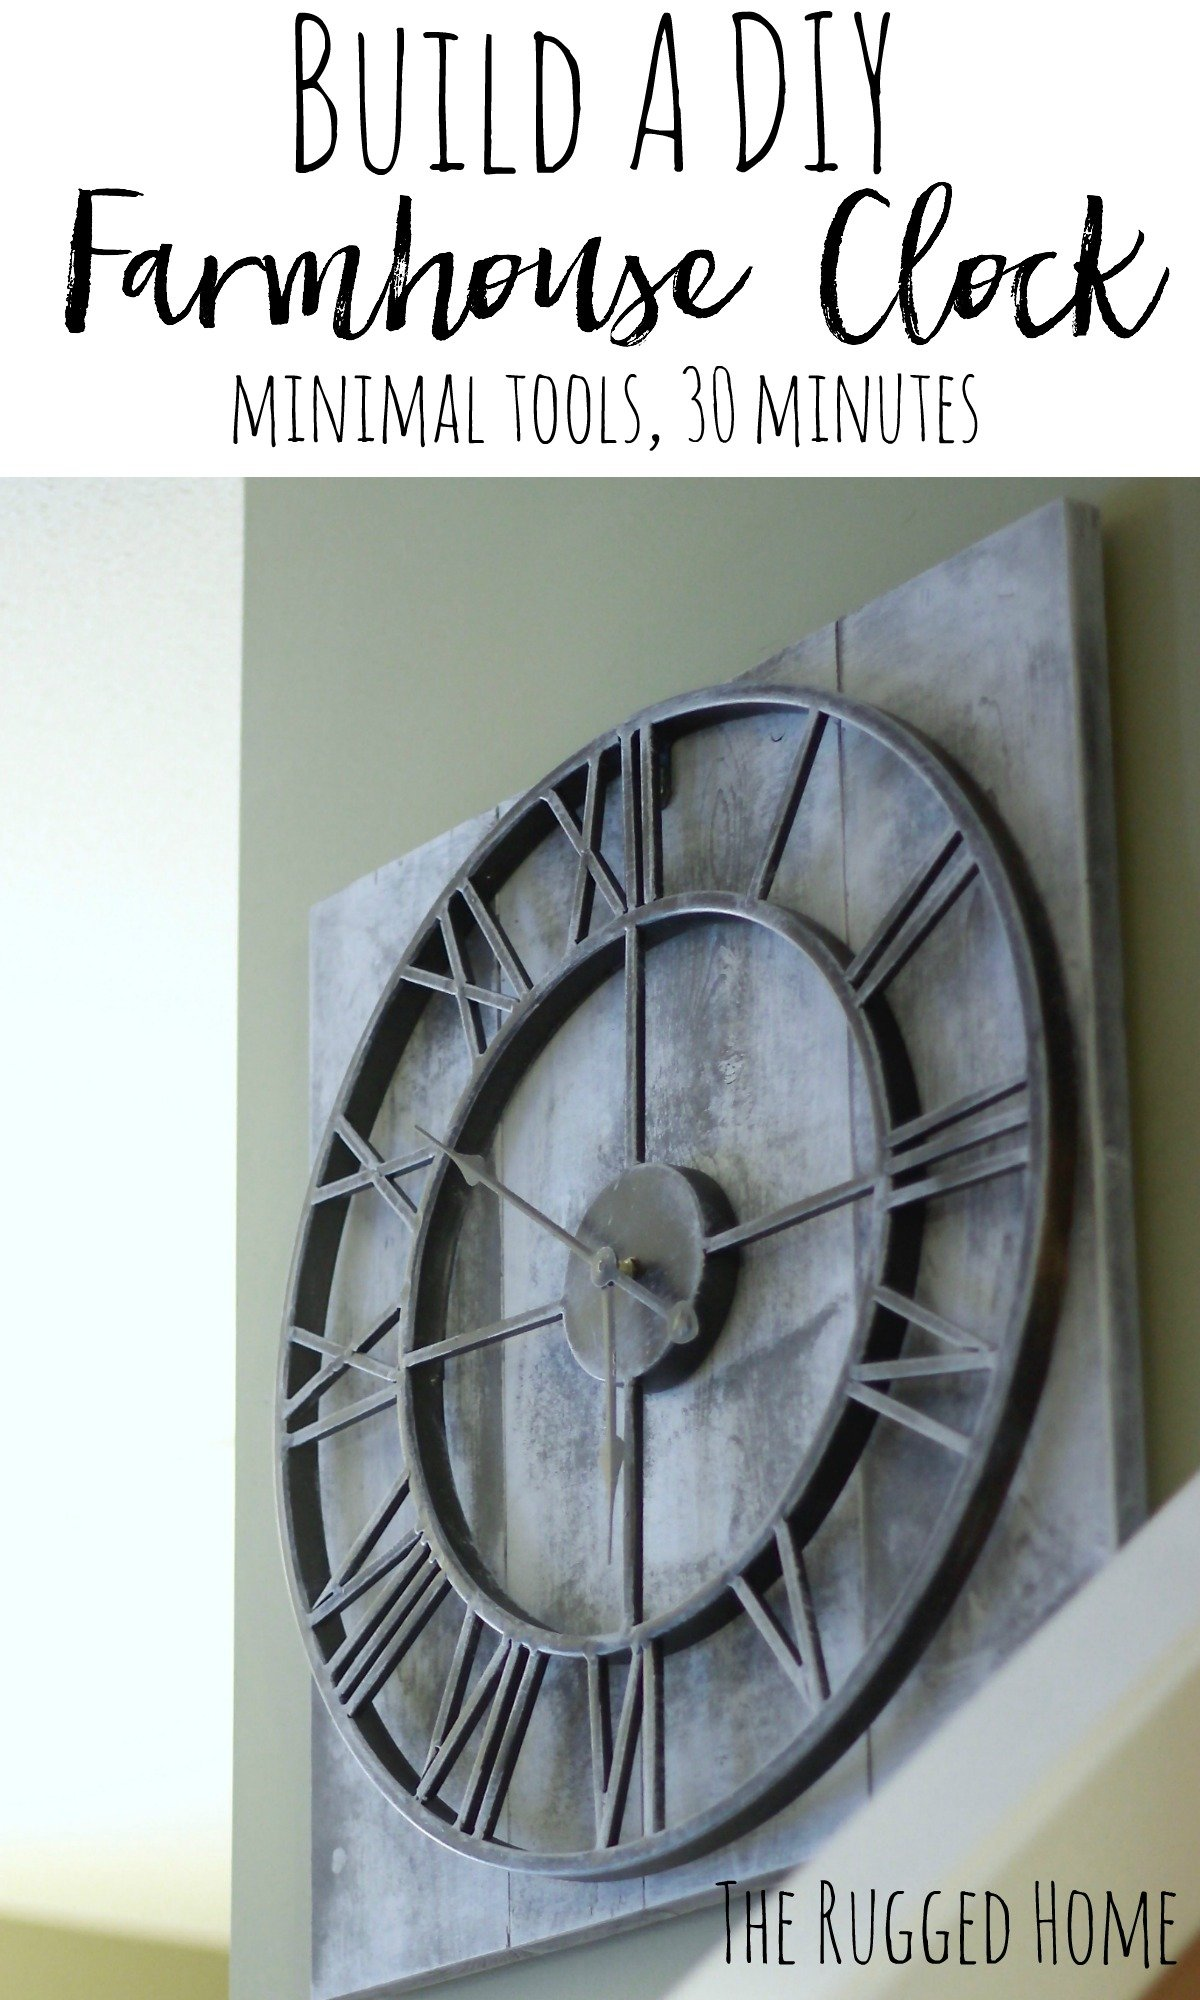 Build A Easy DIY Farmhouse Clock in Under 30 Minutes. ANYONE Can build this as it's super easy www.whitepicketfarmhouse.com